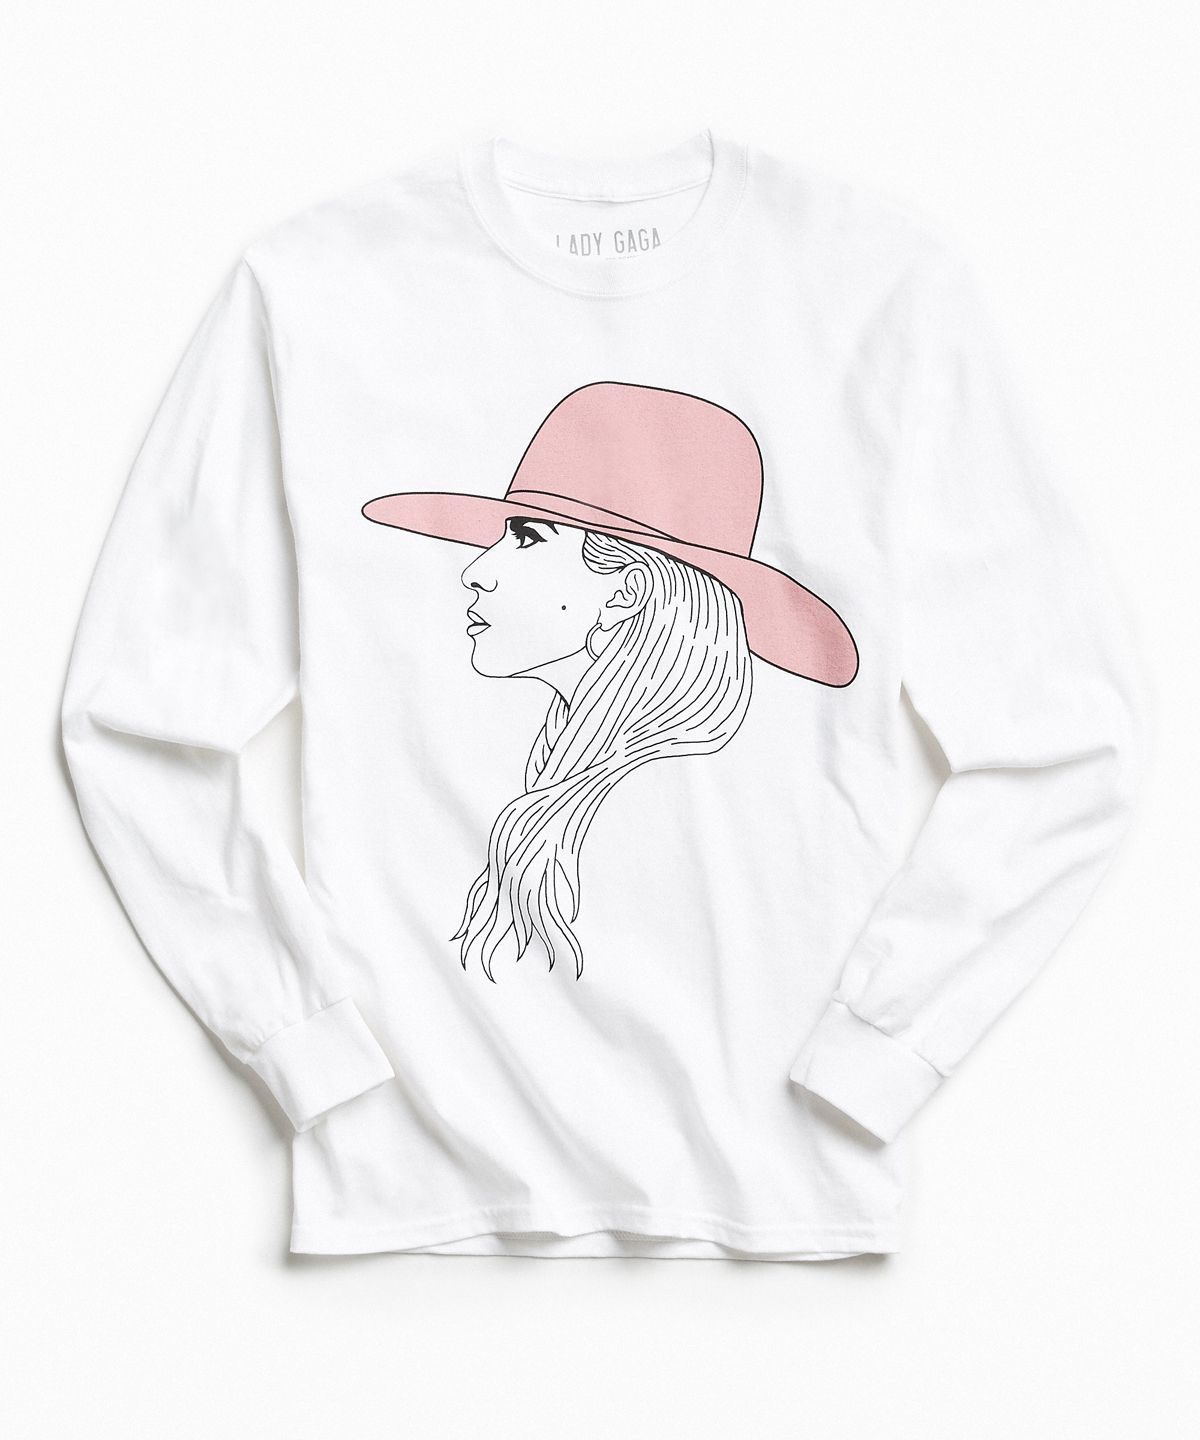 Lady Gaga S Joanne World Tour Urban Outfitters Merchandise Cotton Shirts For Men Long Sleeve Shirt Men Lady Gaga Joanne